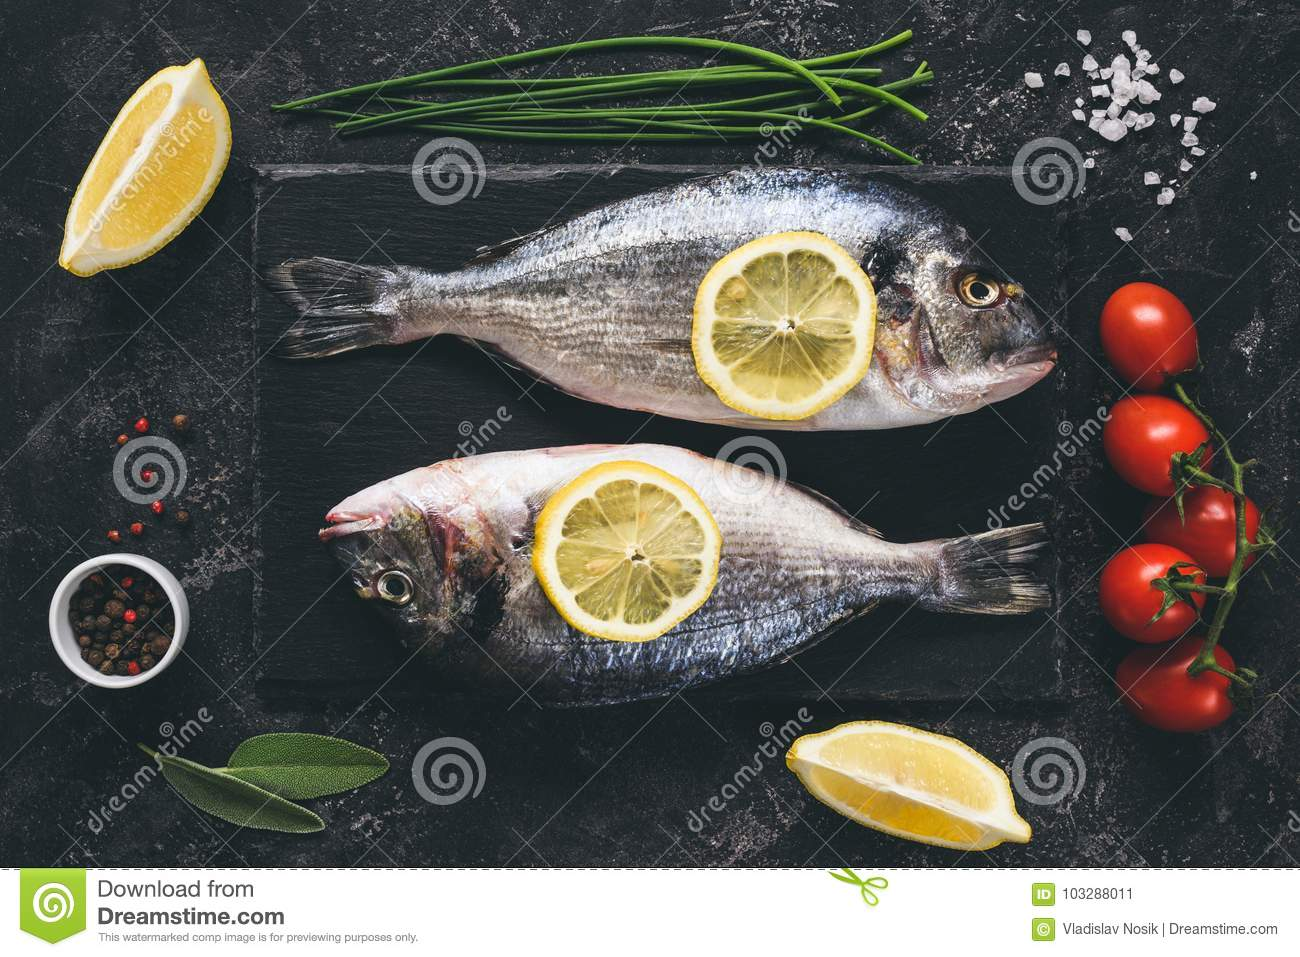 Fresh fish with spices, vegetables and herbs on slate background ready for cooking